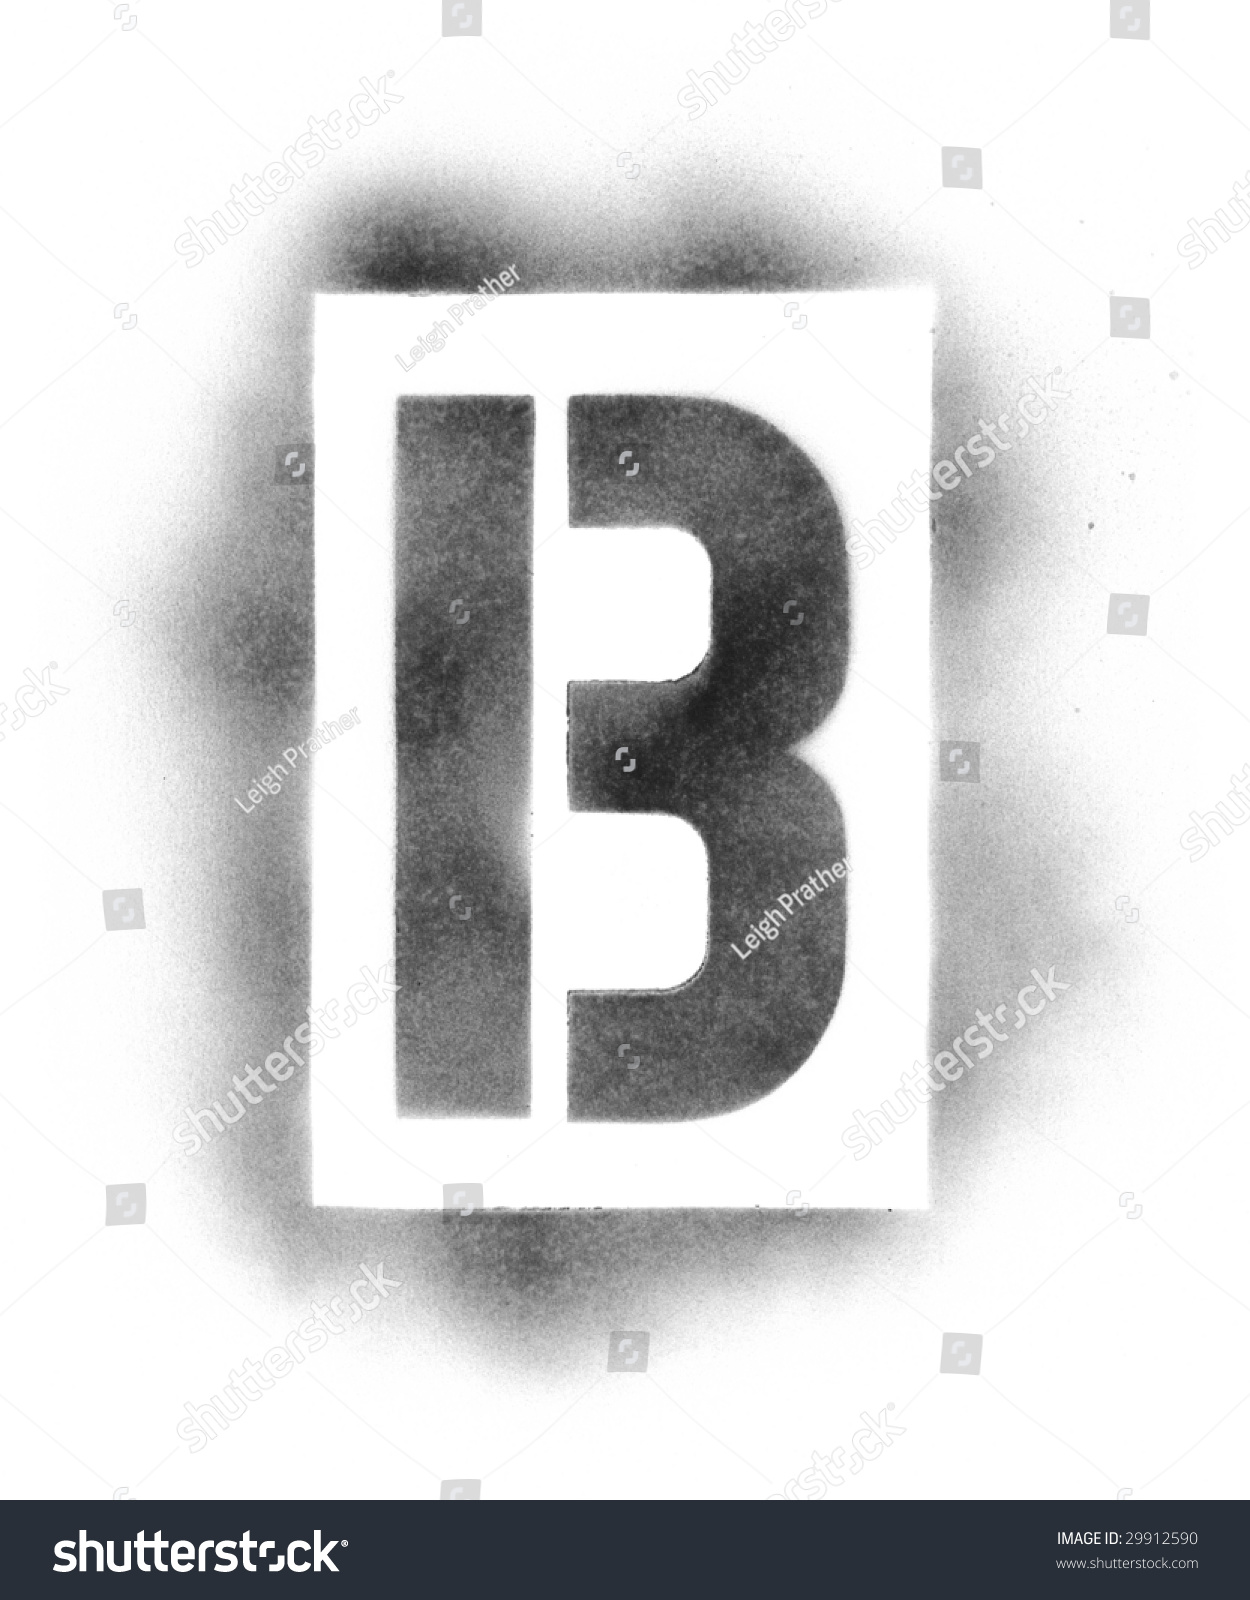 stencil letters in spray paint stock photo 29912590 shutterstock. Black Bedroom Furniture Sets. Home Design Ideas